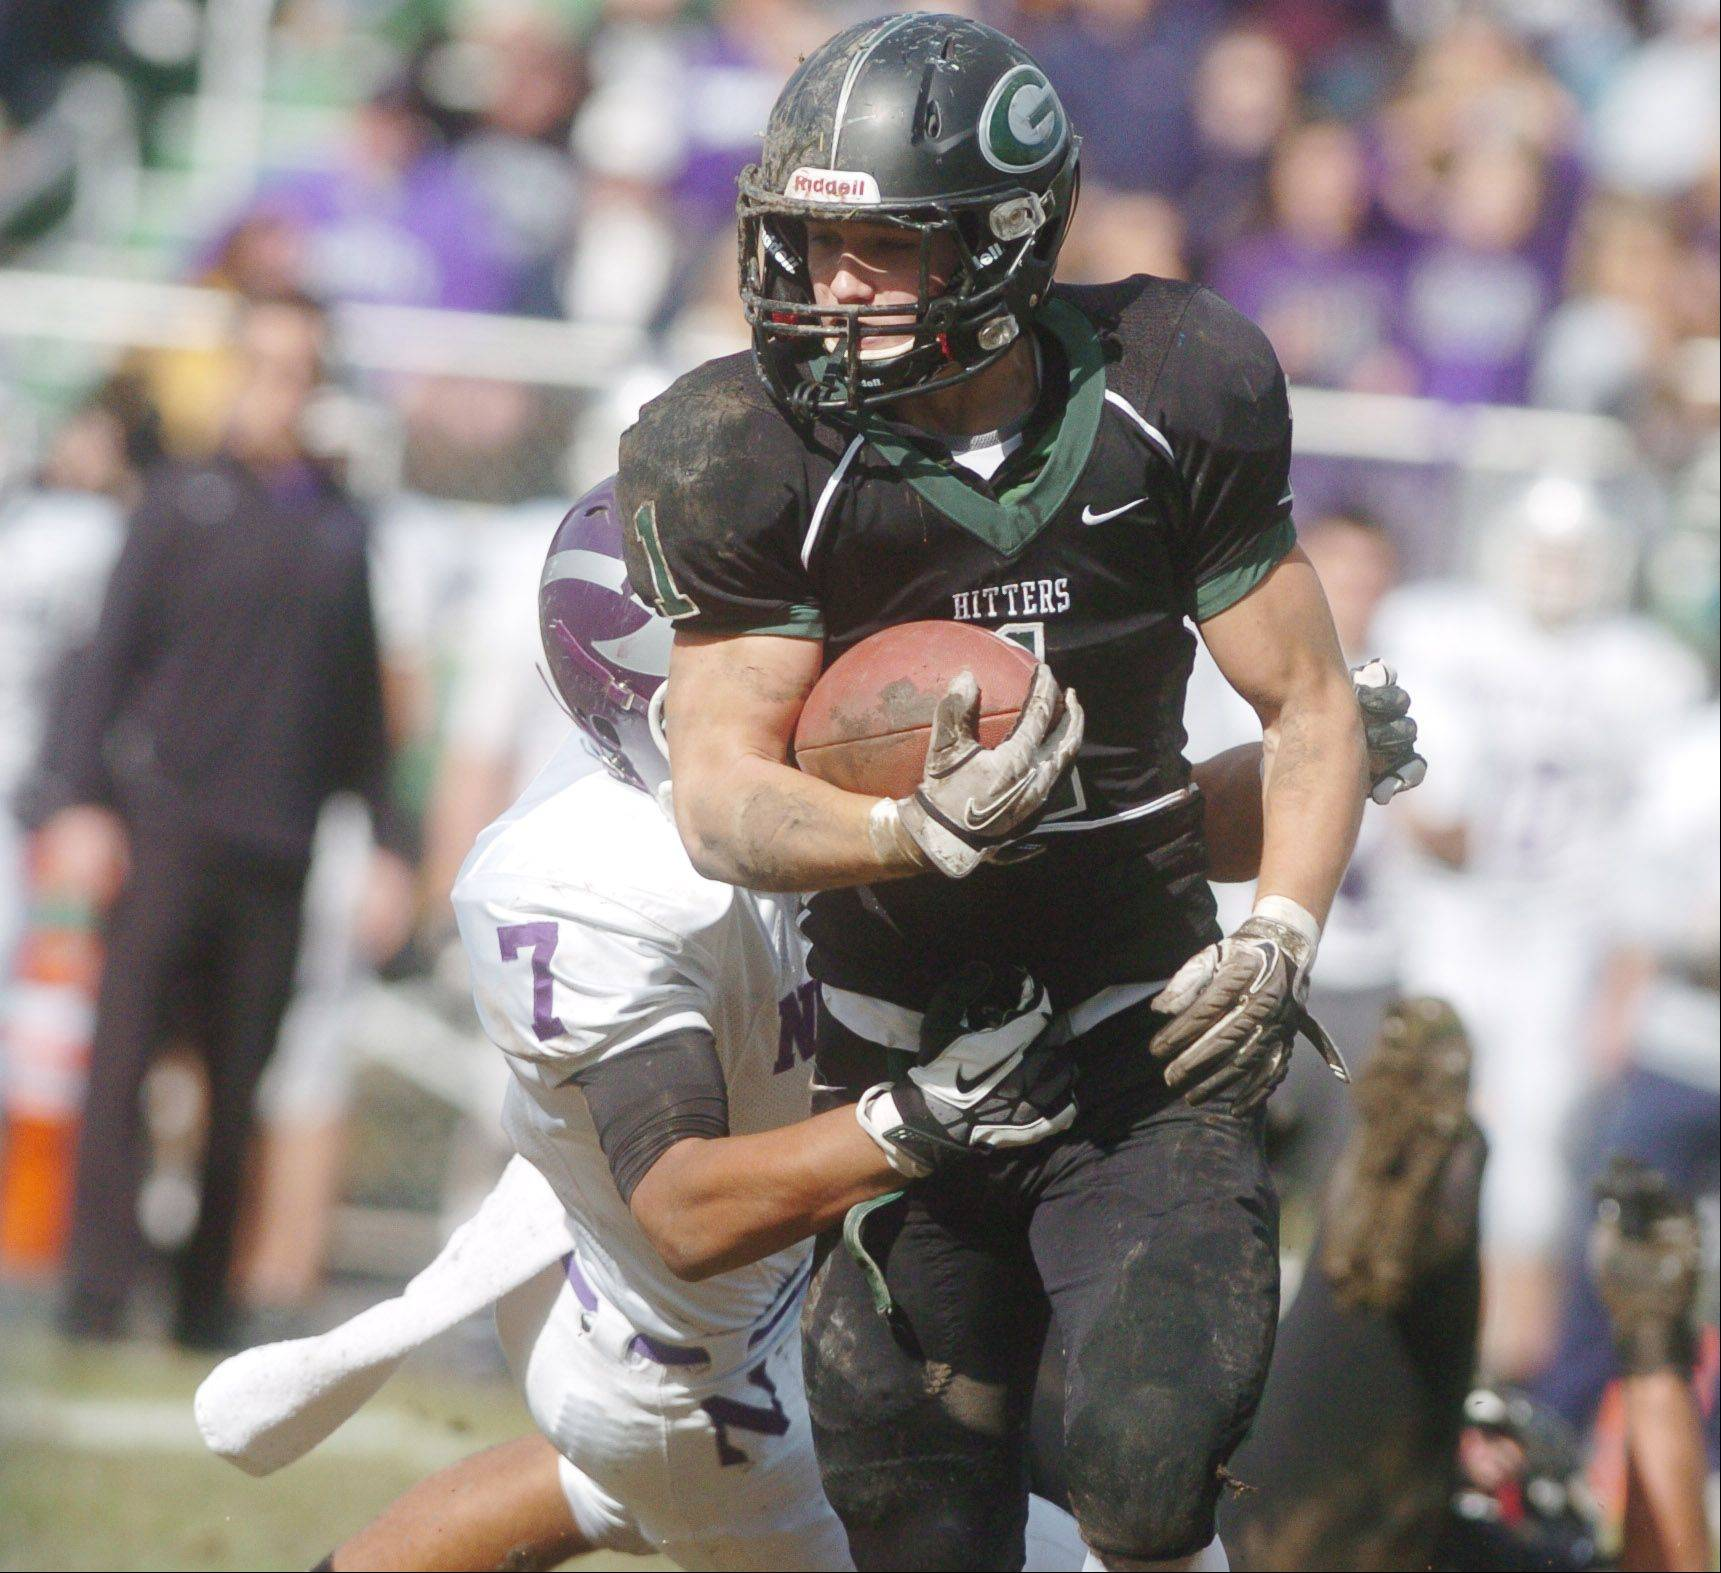 Joseph Zito of Glenbard West moves the ball during the Downers Grove North at Glenbard West football game Saturday.